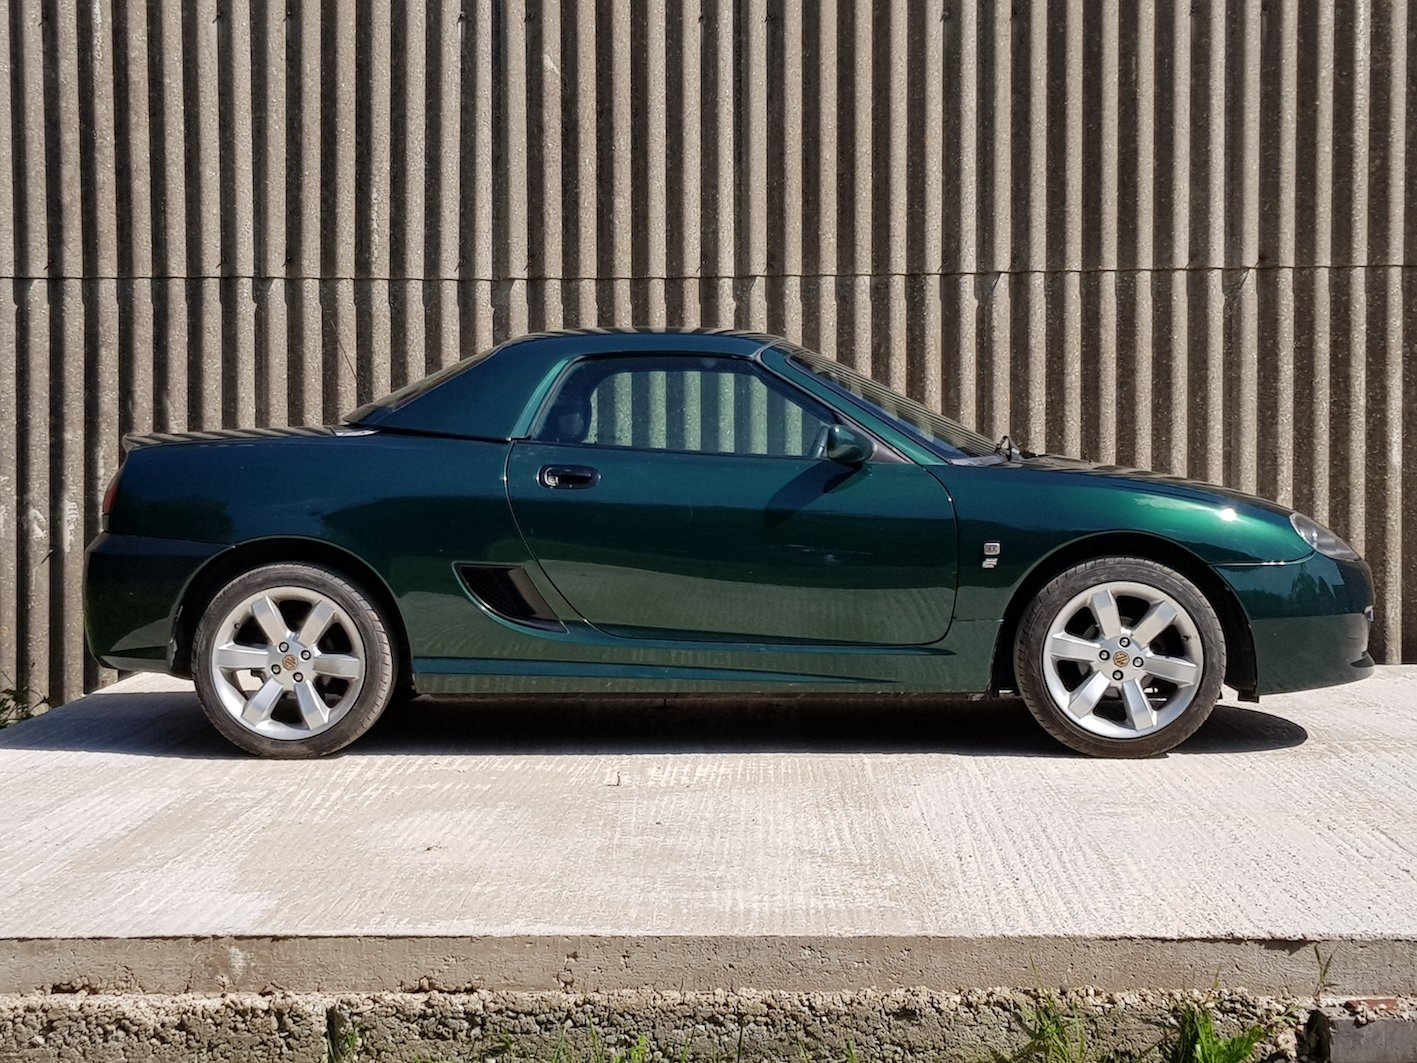 MG TF, 2003, British Racing Green For Sale (picture 1 of 6)